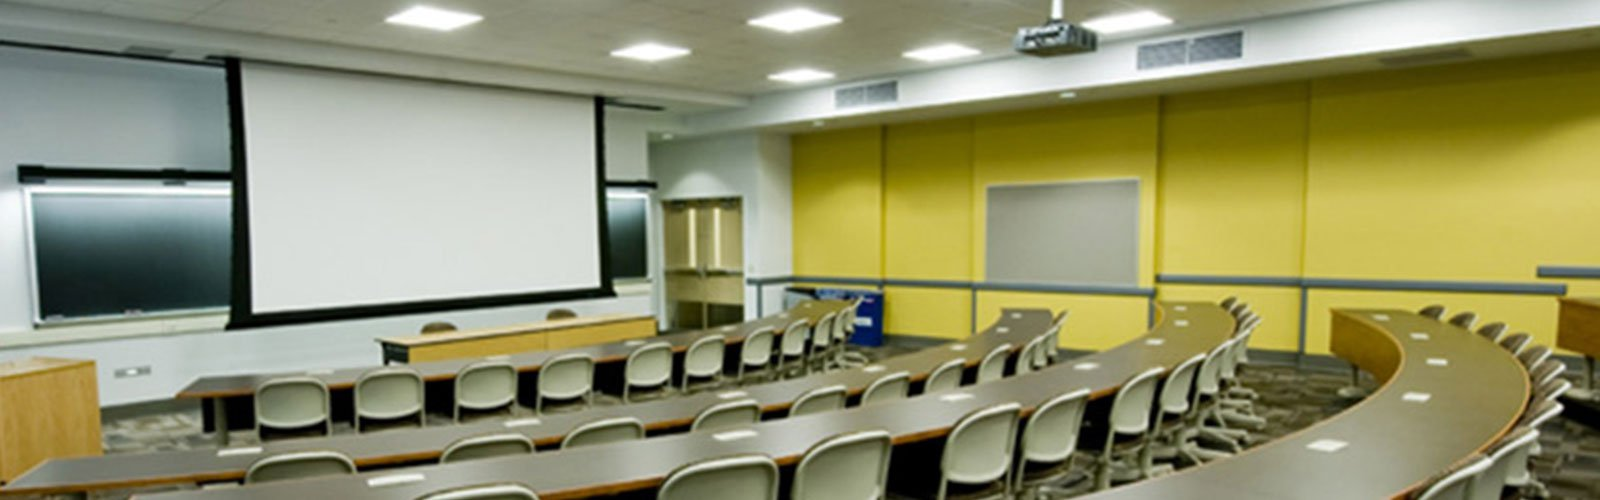 Large tiered classroom setup with an oversized projector screen at the front of the class (background)